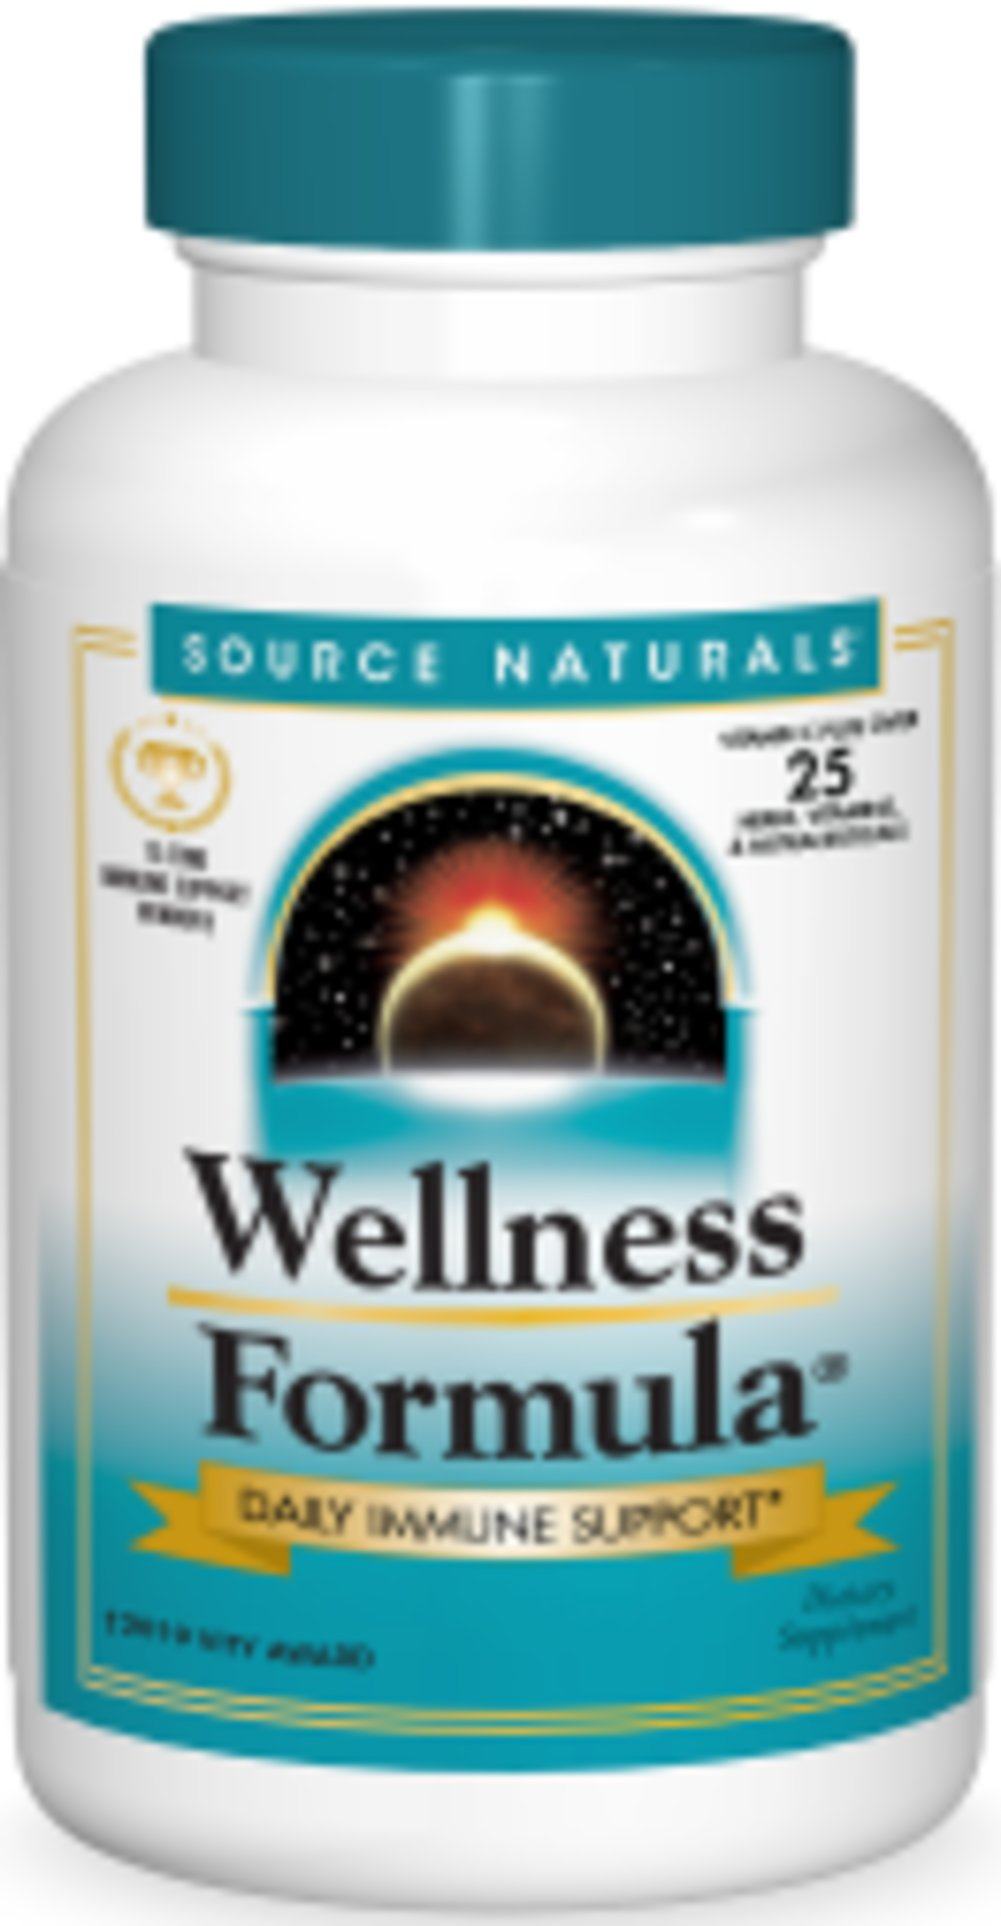 Wellness Formula <p><strong>From the Manufacturer's Label: </strong></p><p>Wellness Formula is a combination of herbs, antioxidants and vitamins.  These ingredients include Vitamin C, Echinacea, Goldenseal, Astragalus, Propolis and Garlic.</p><p>Manufactured by SOURCE NATURALS.</p> 90 Tablets  $15.99